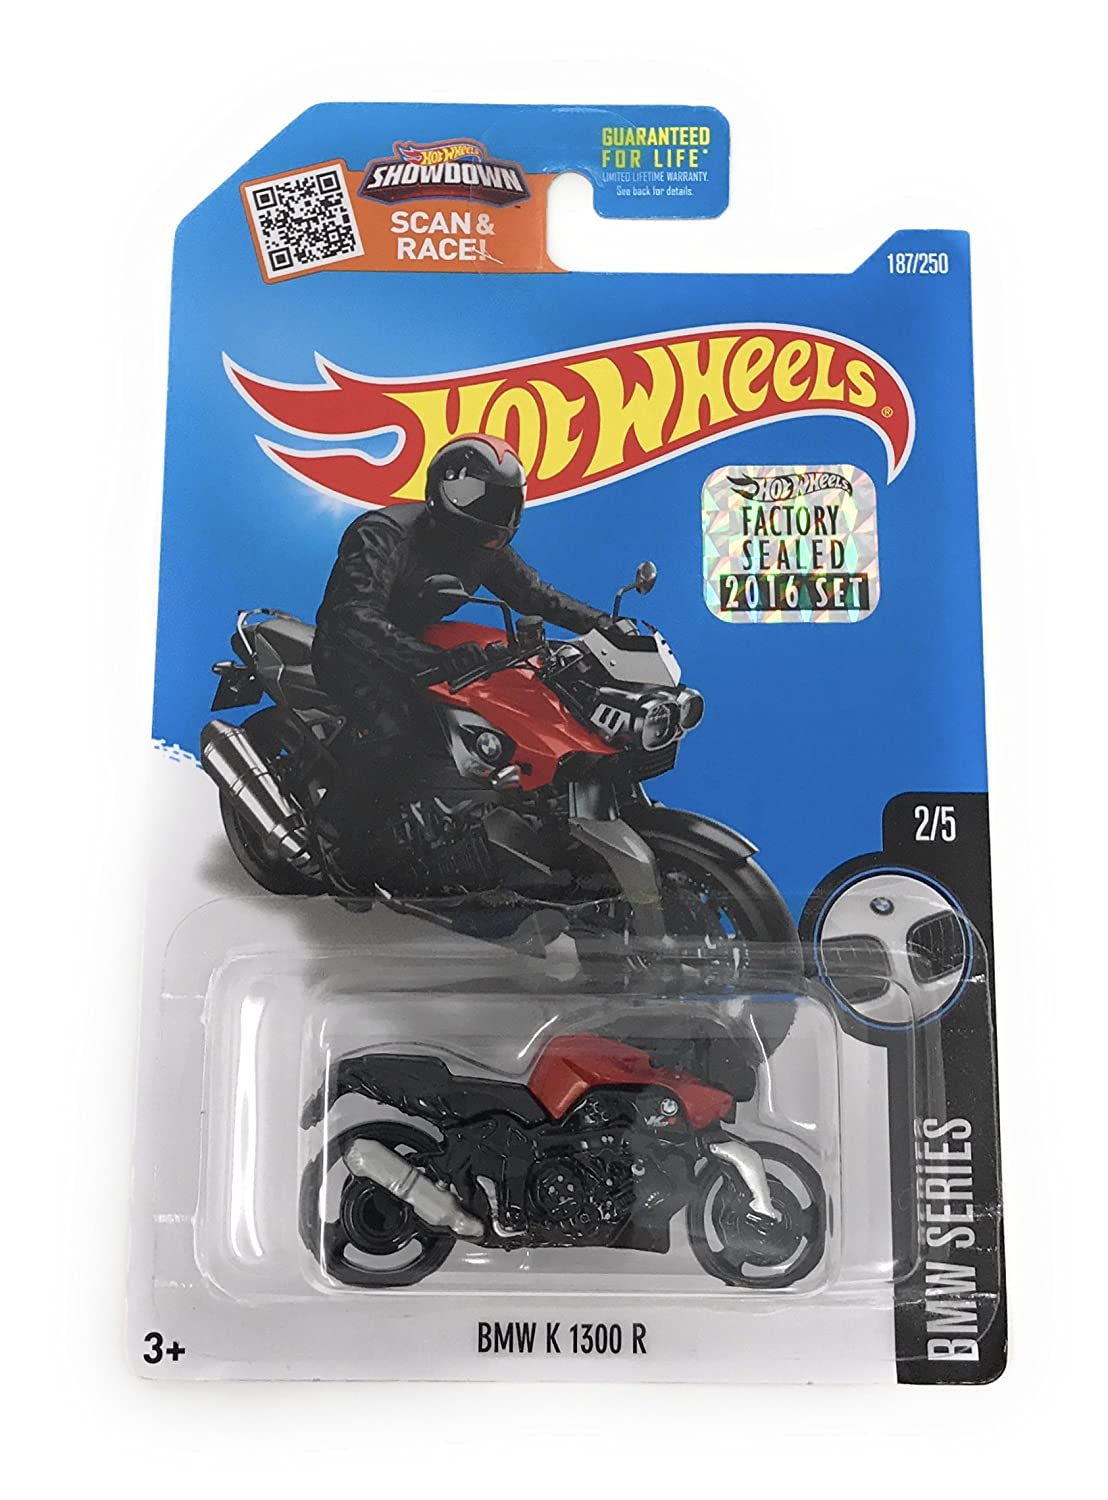 Hw hot wheels 2015 hw city 48 250 canyon carver police motorcycle - Amazon Com Hot Wheels 2016 Bmw Series Bmw K 1300 R Motorcycle 187 250 Black And Red Toys Games